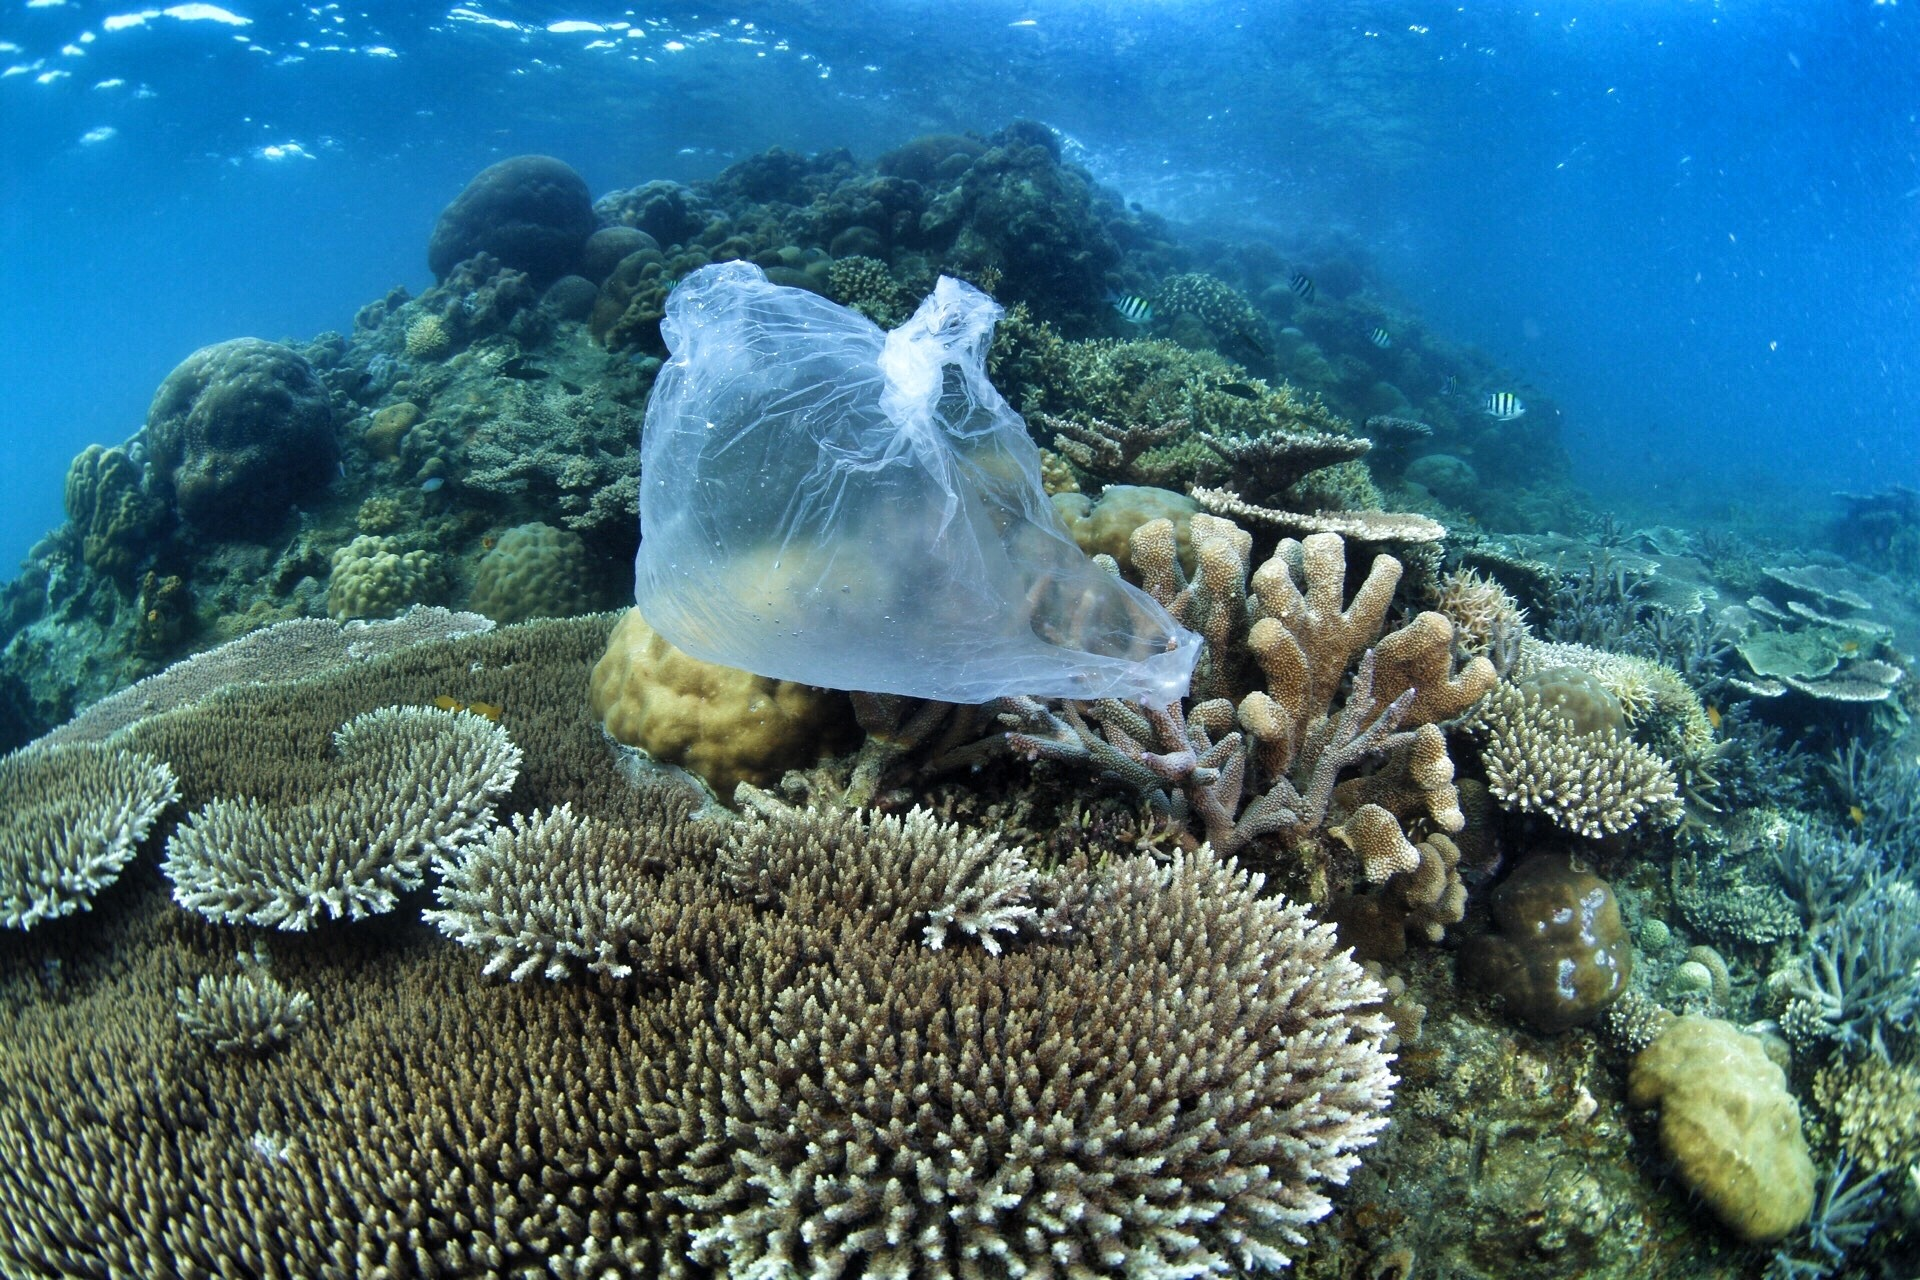 A plastic bag floating underwater surrounded by plant life and fish; Ocean, plastic waste, underwater, fish.